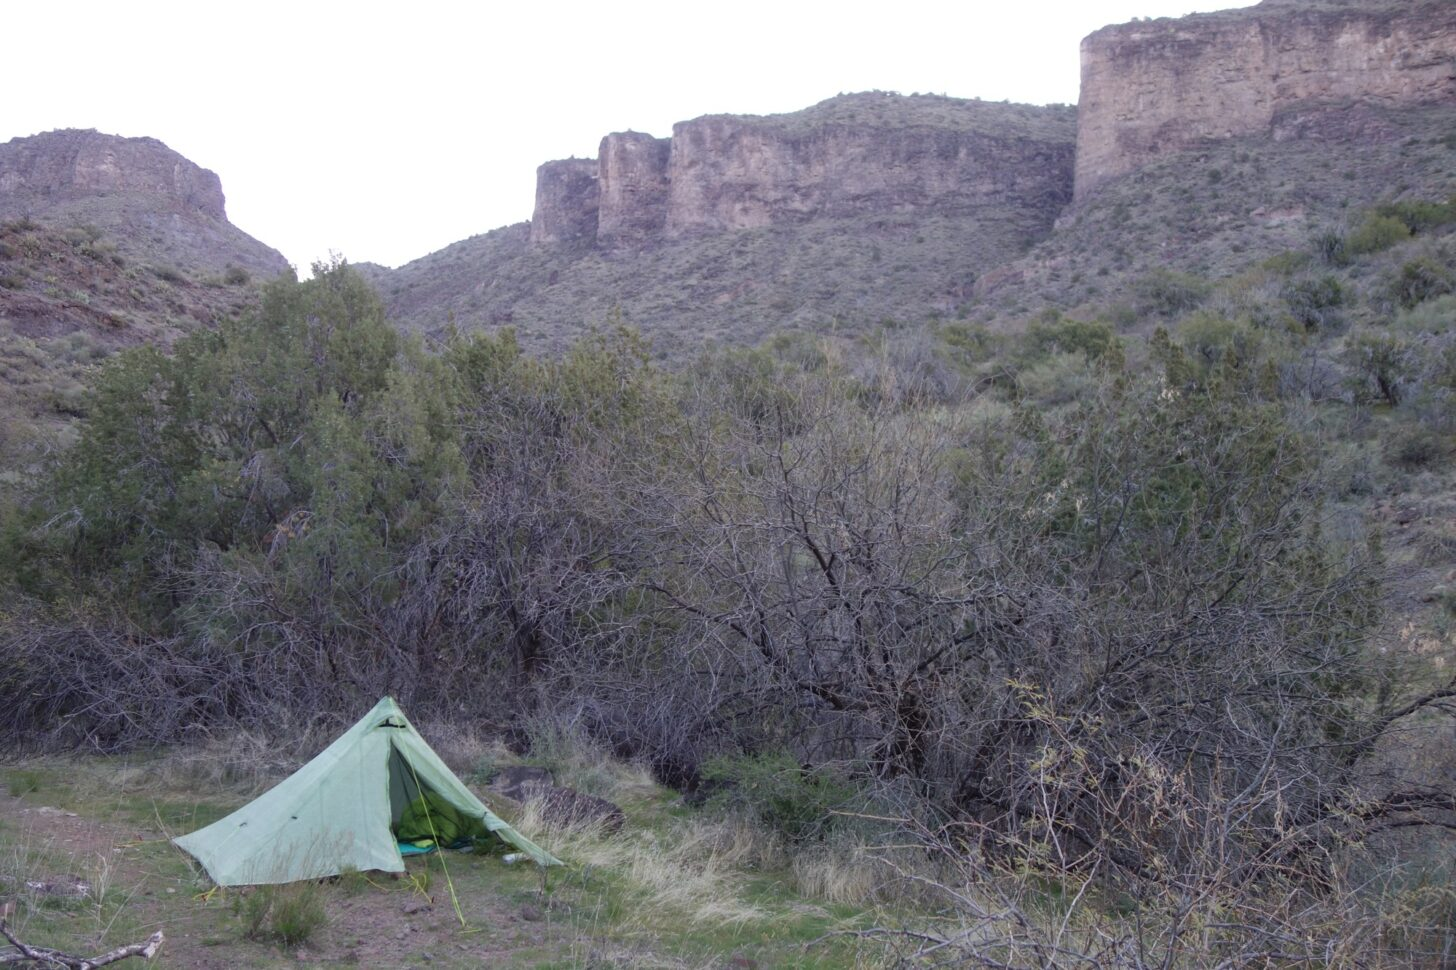 A pyramid style tent nestles into a hollow at the base of some cliffs.